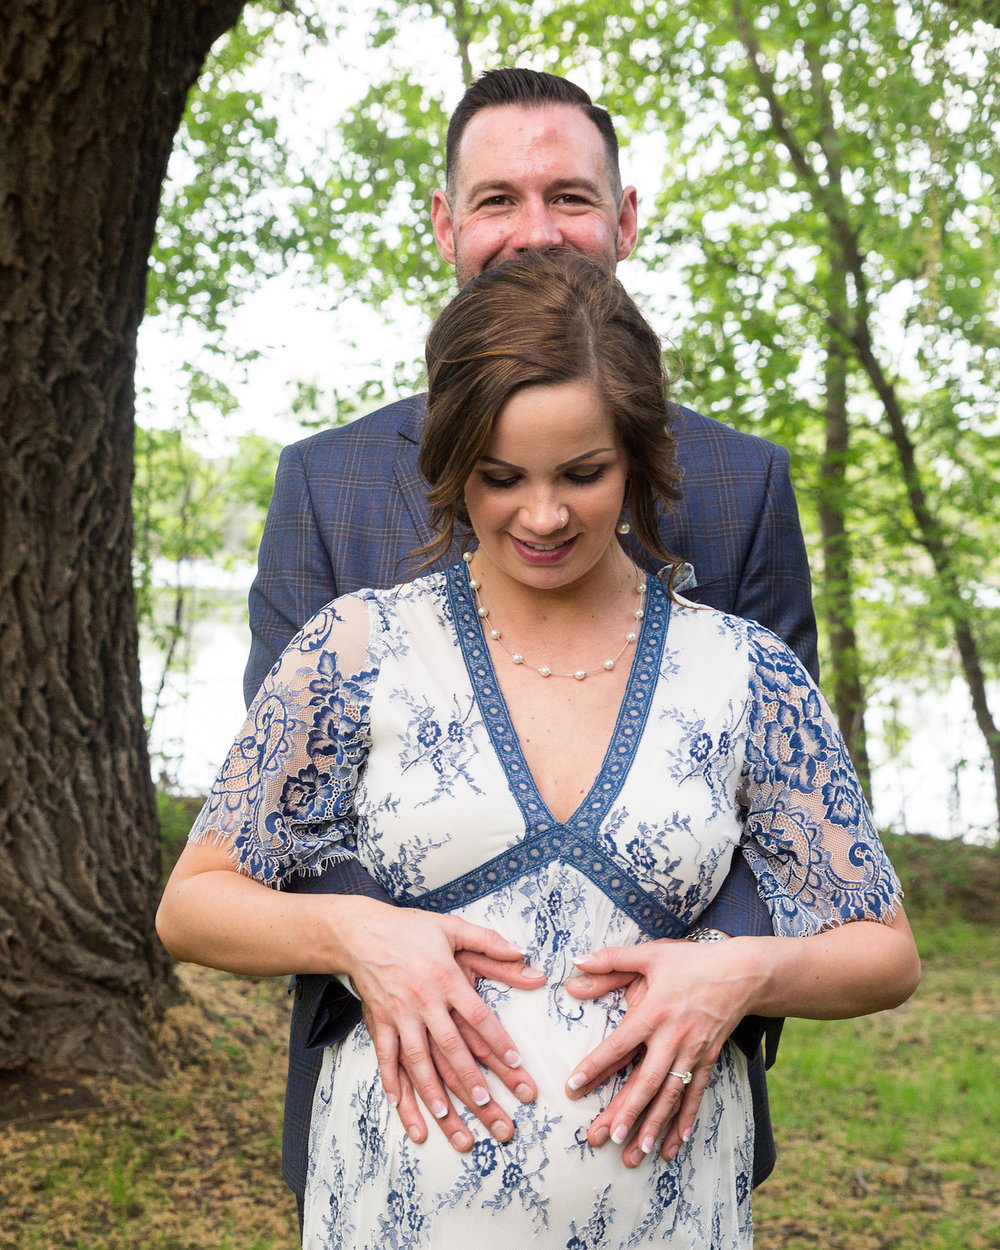 Cindyrella's Garden, pregnant bride in blue and white lace wedding dress, pregnancy photo